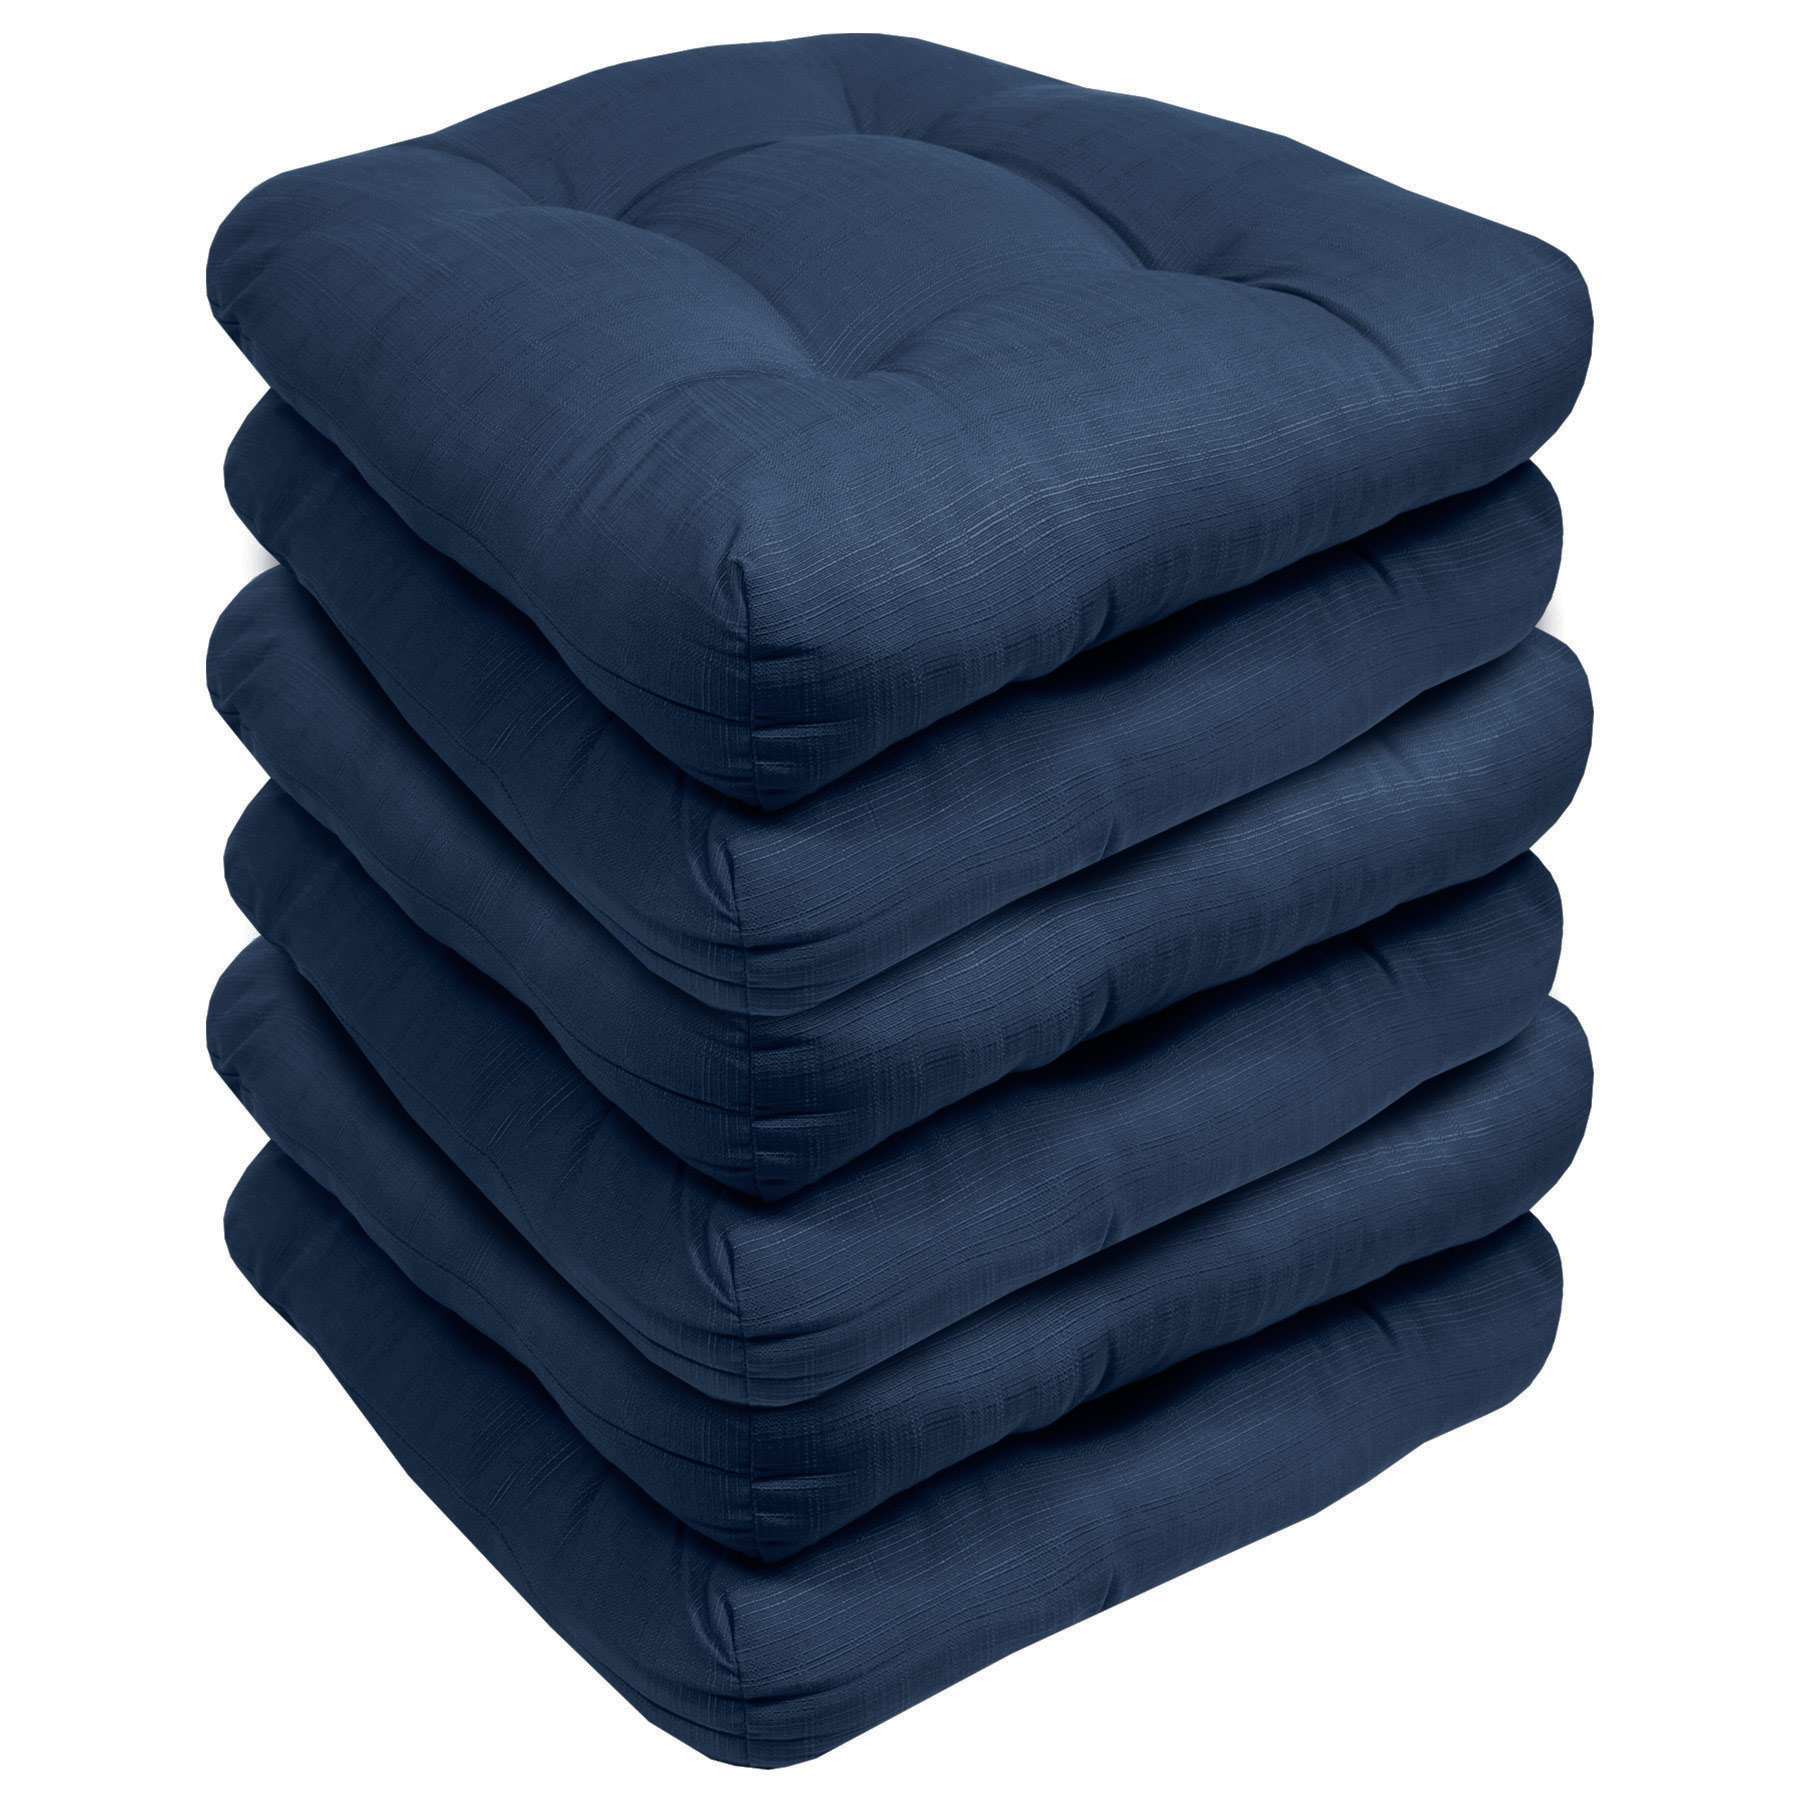 indoor outdoor reversible patio seat cushion pad 6 pack navy 19 x 19